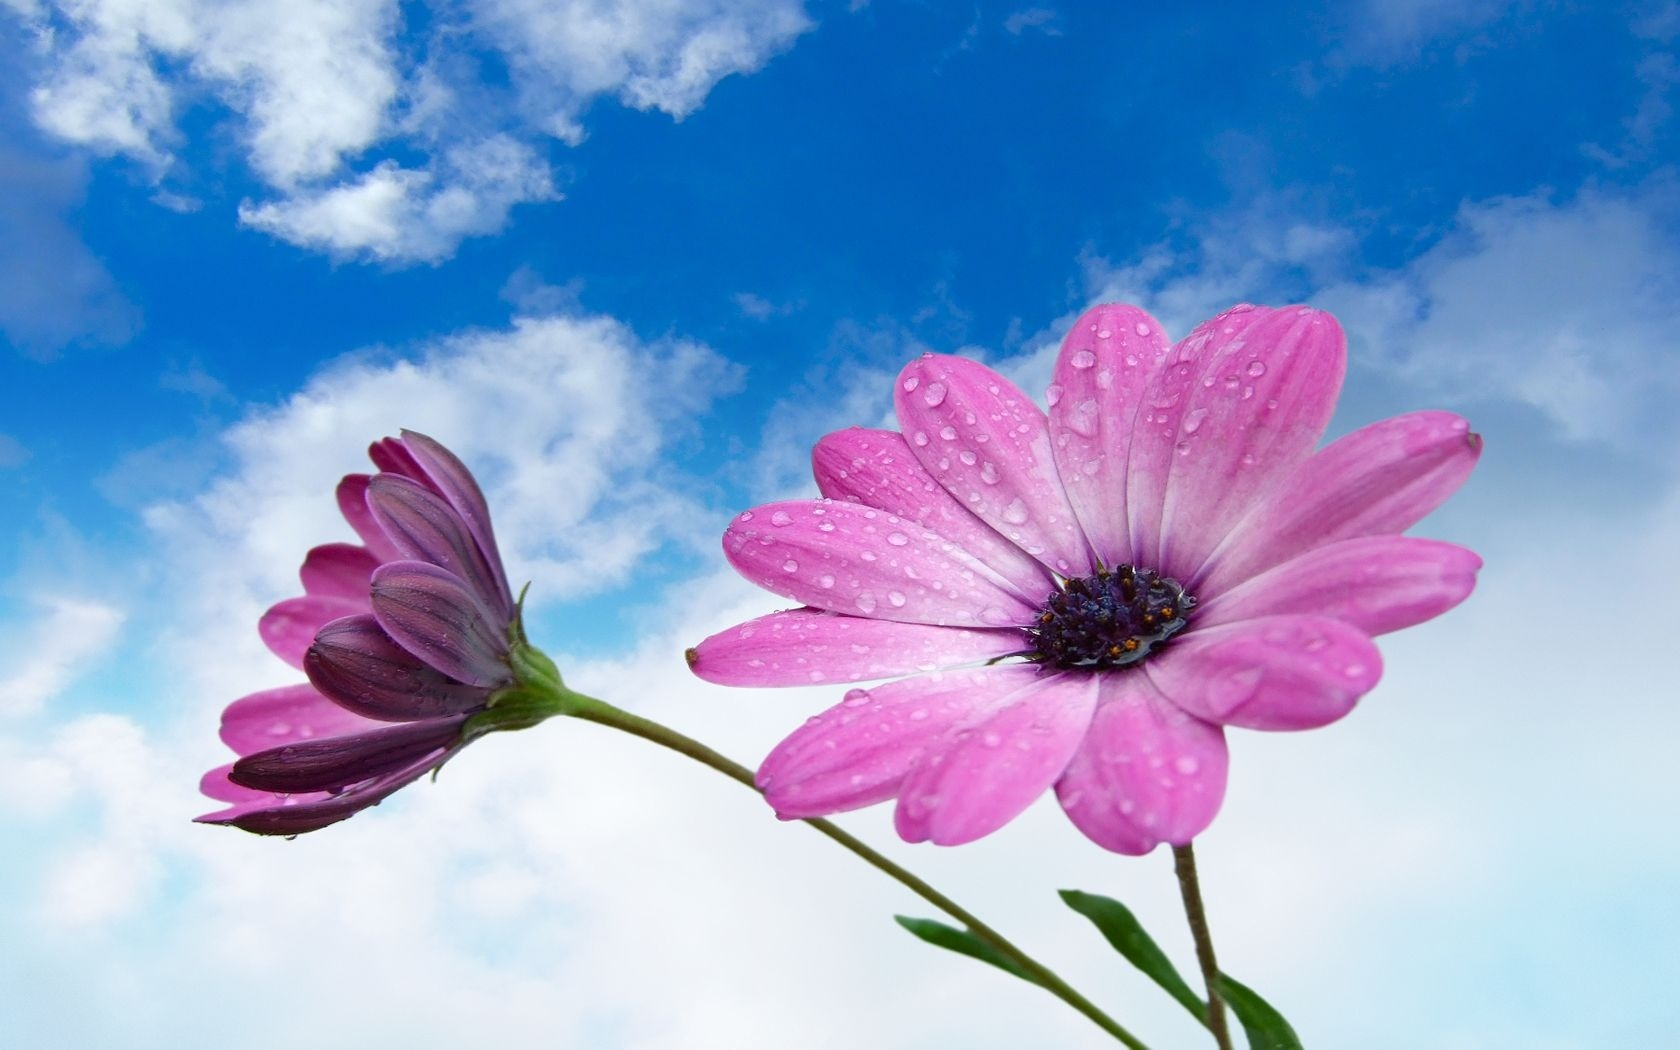 wallpaper sky under flowers - photo #24